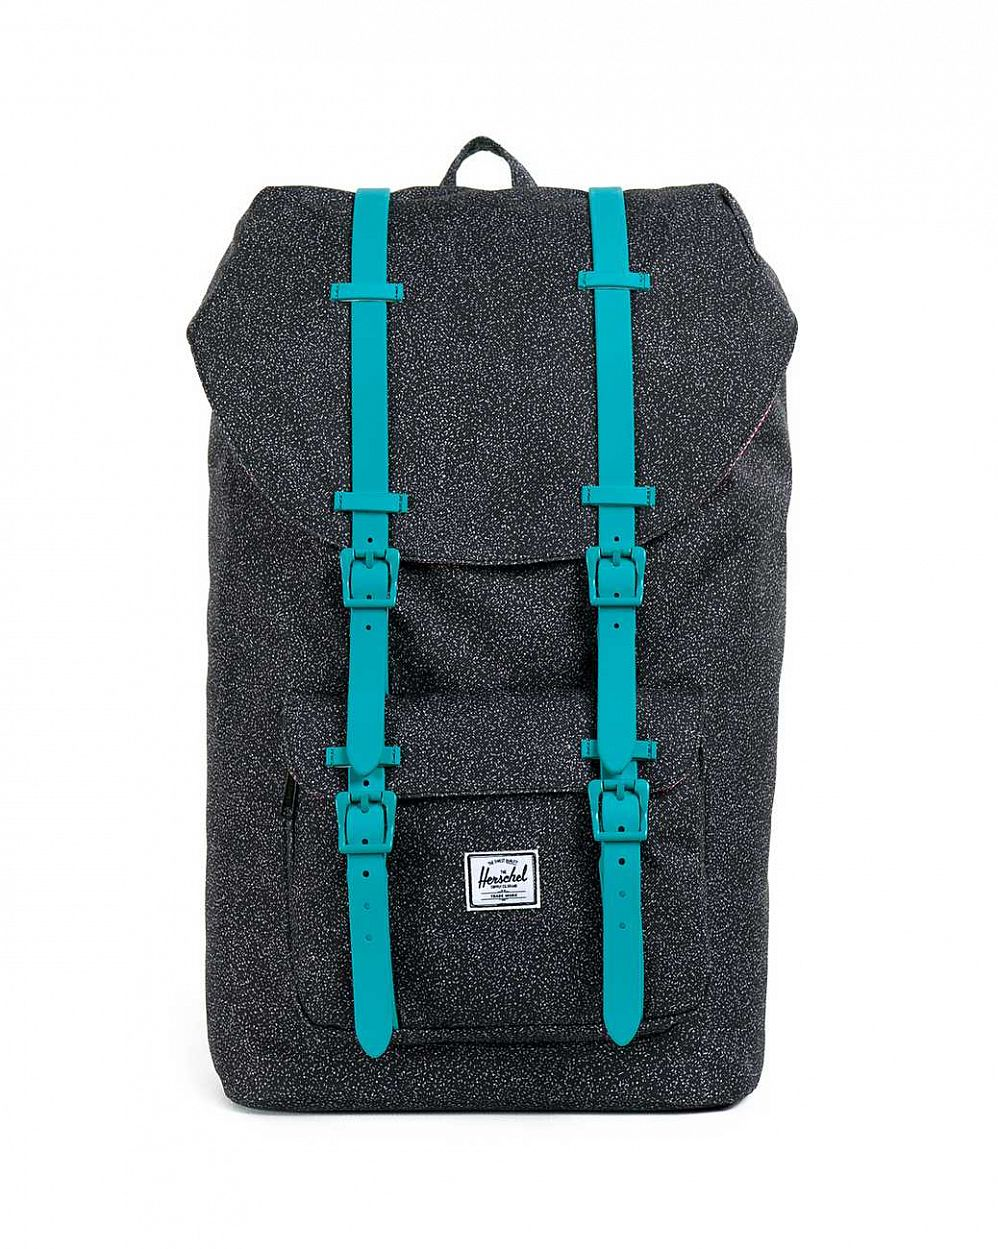 купить Рюкзак Herschel Little America Speckle Teal Rubber в Москве